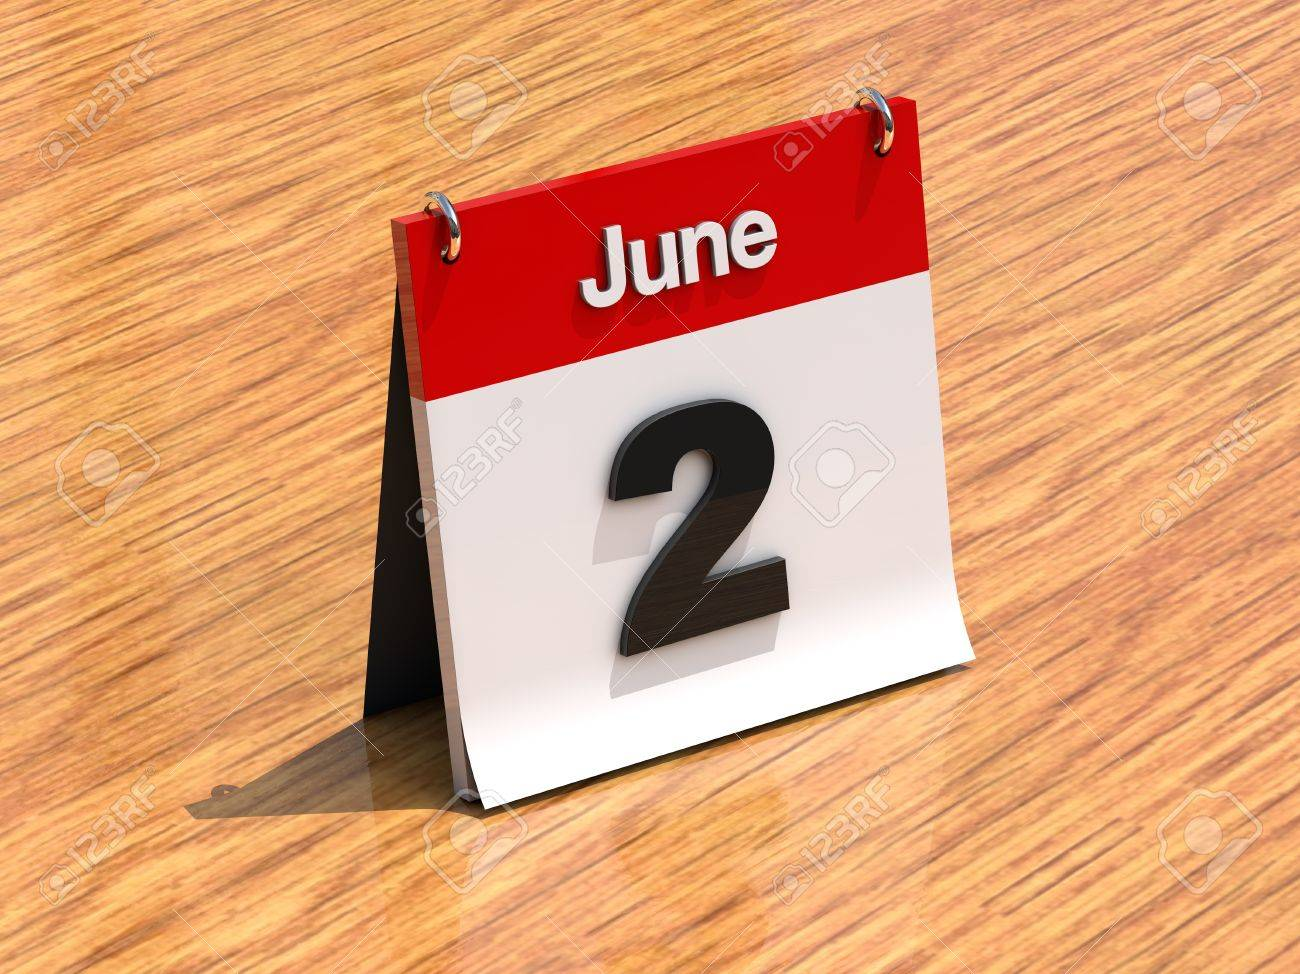 https://i0.wp.com/previews.123rf.com/images/kasiastock/kasiastock1303/kasiastock130300283/18274147-3D-calendar-standing-on-desk-June-2-part-of-a-set-Stock-Photo.jpg